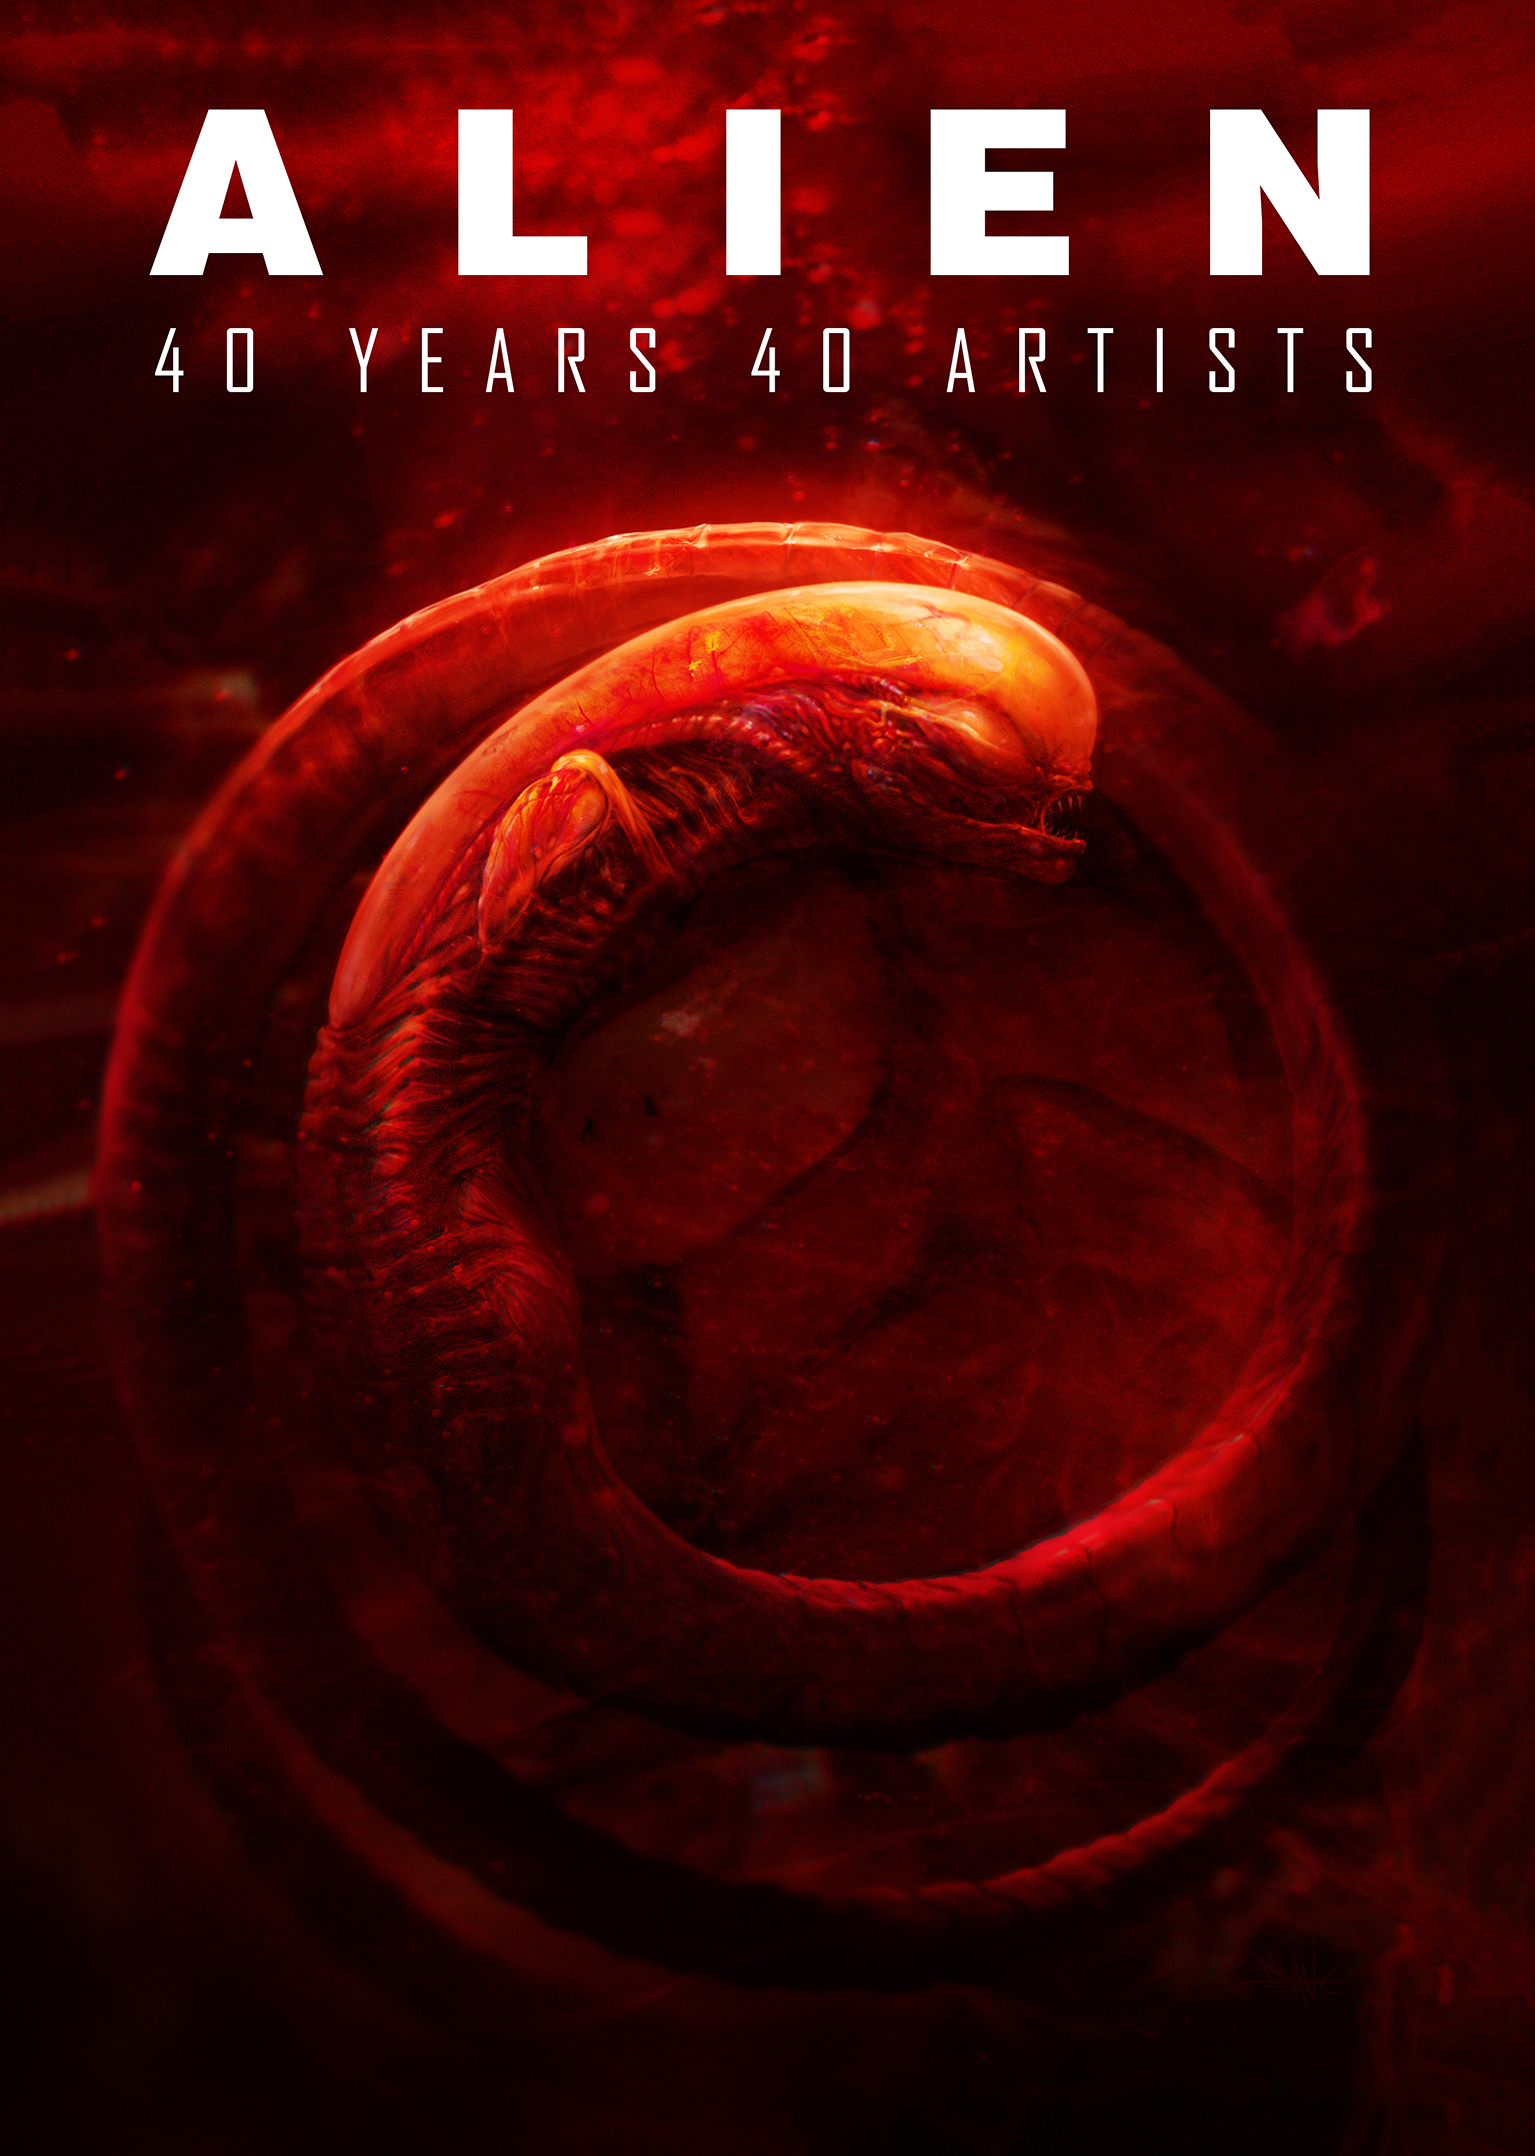 Alien_40Years40Artists.jpg